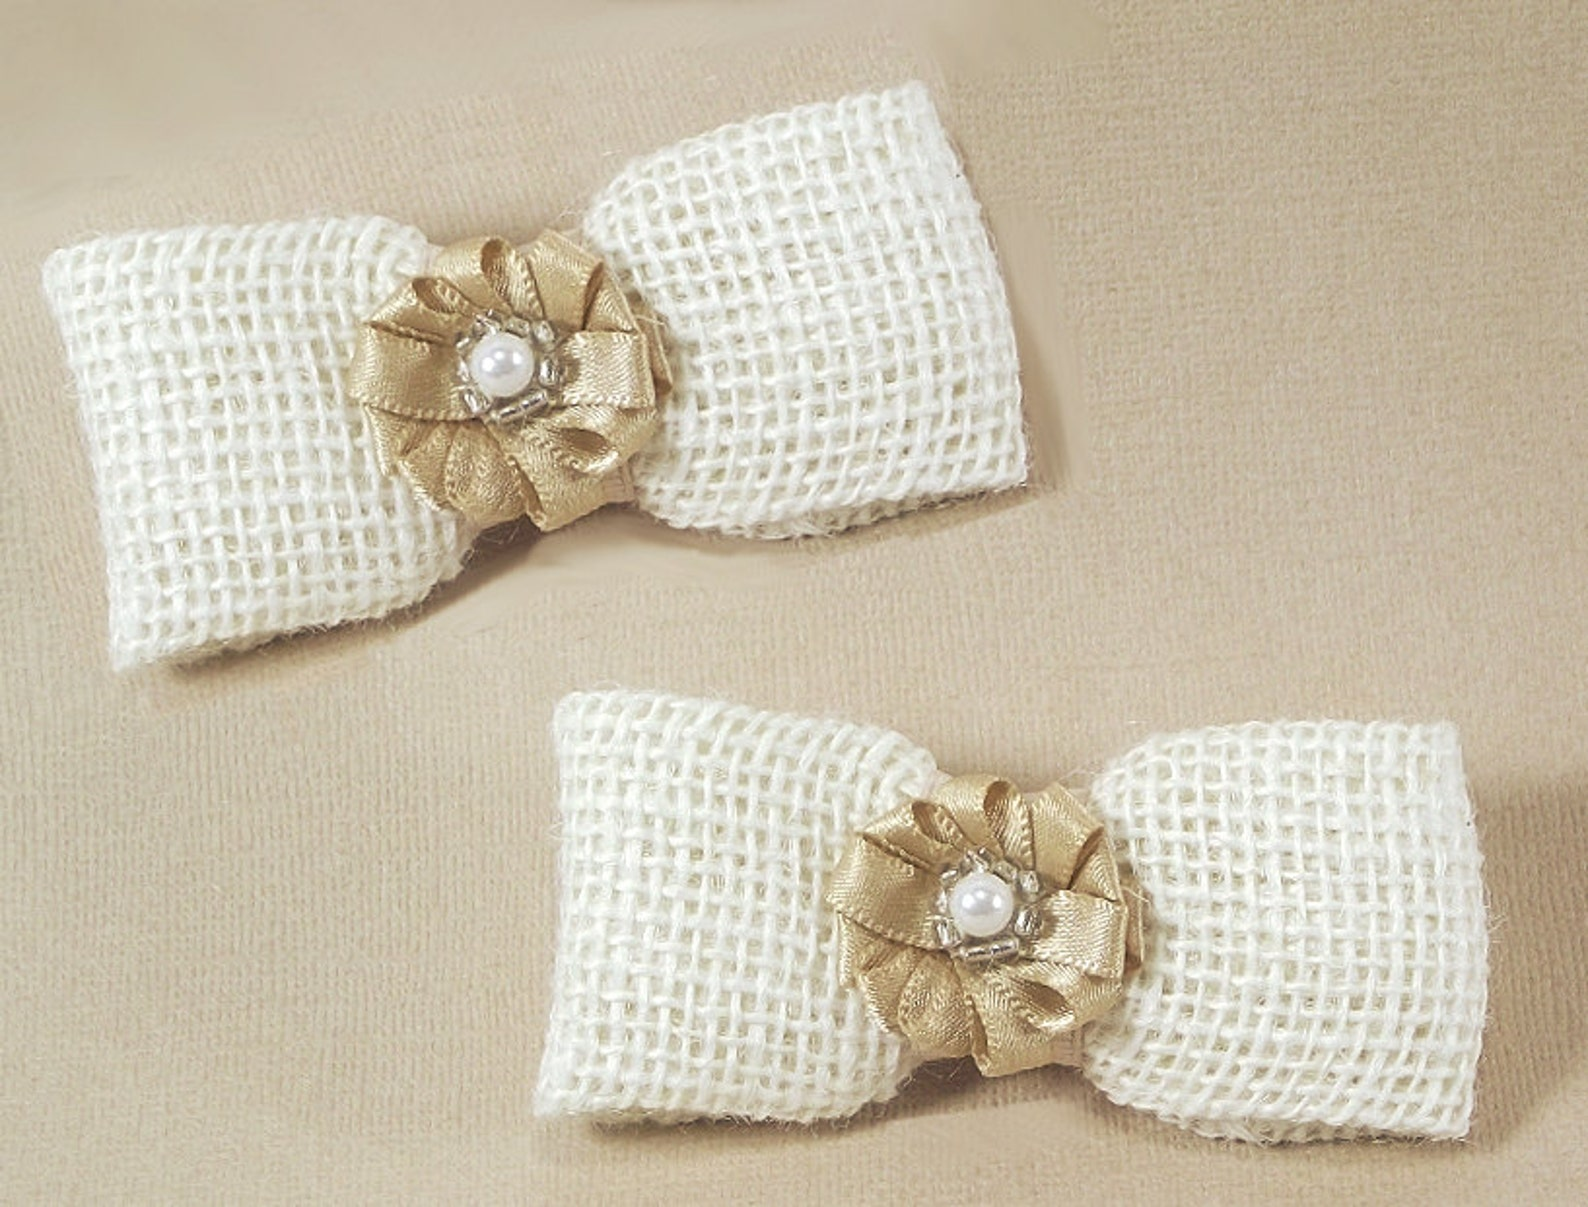 cottage chic wedding bow shoe clips, creamy white satin burlap and pearl shoe clips, for high heels sandles & ballet flats